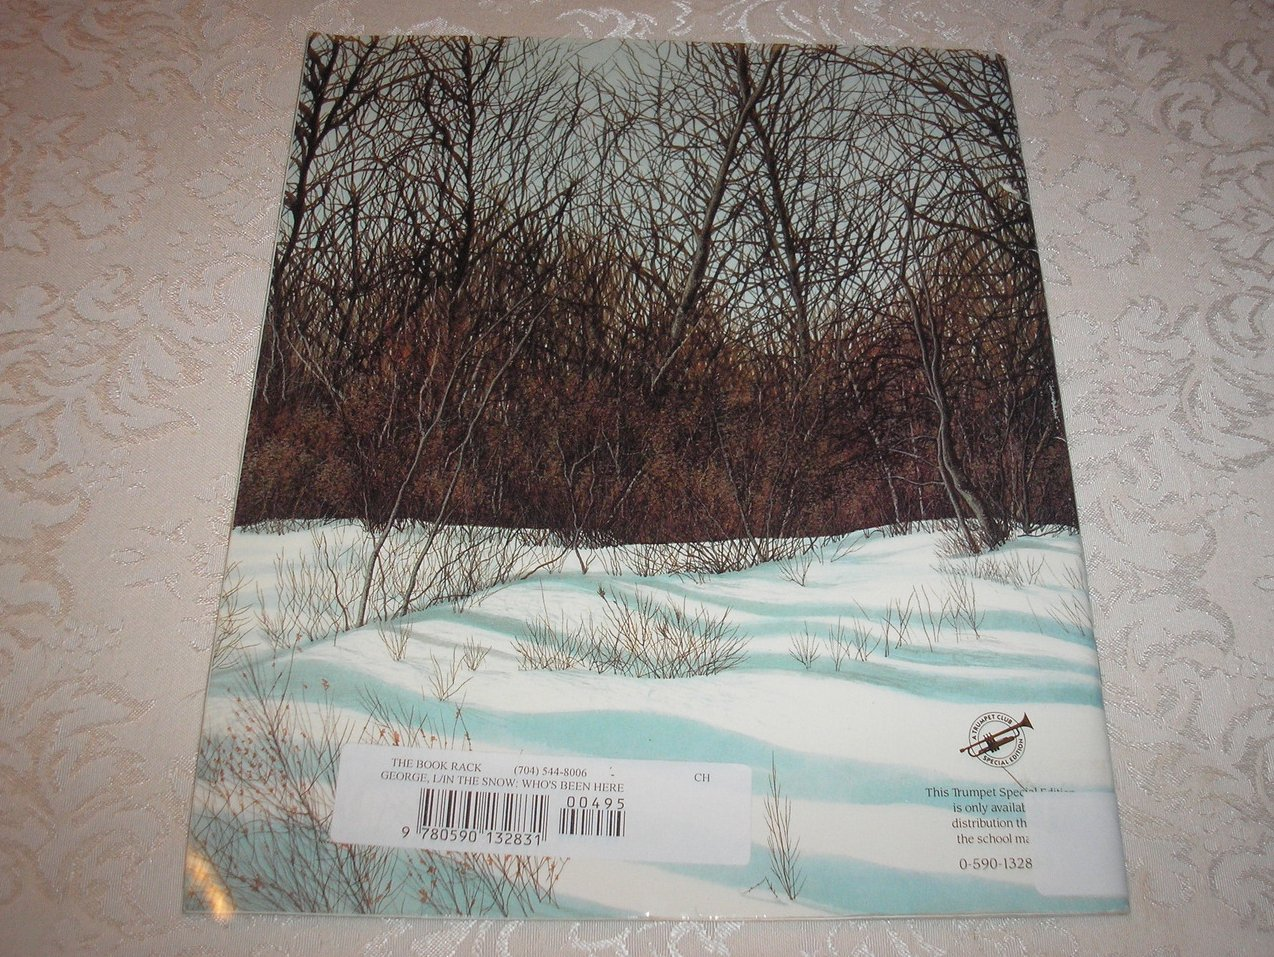 Image 5 of In the Snow: Who's Been Here? Lindsay Barrett George Good Rare Softcover